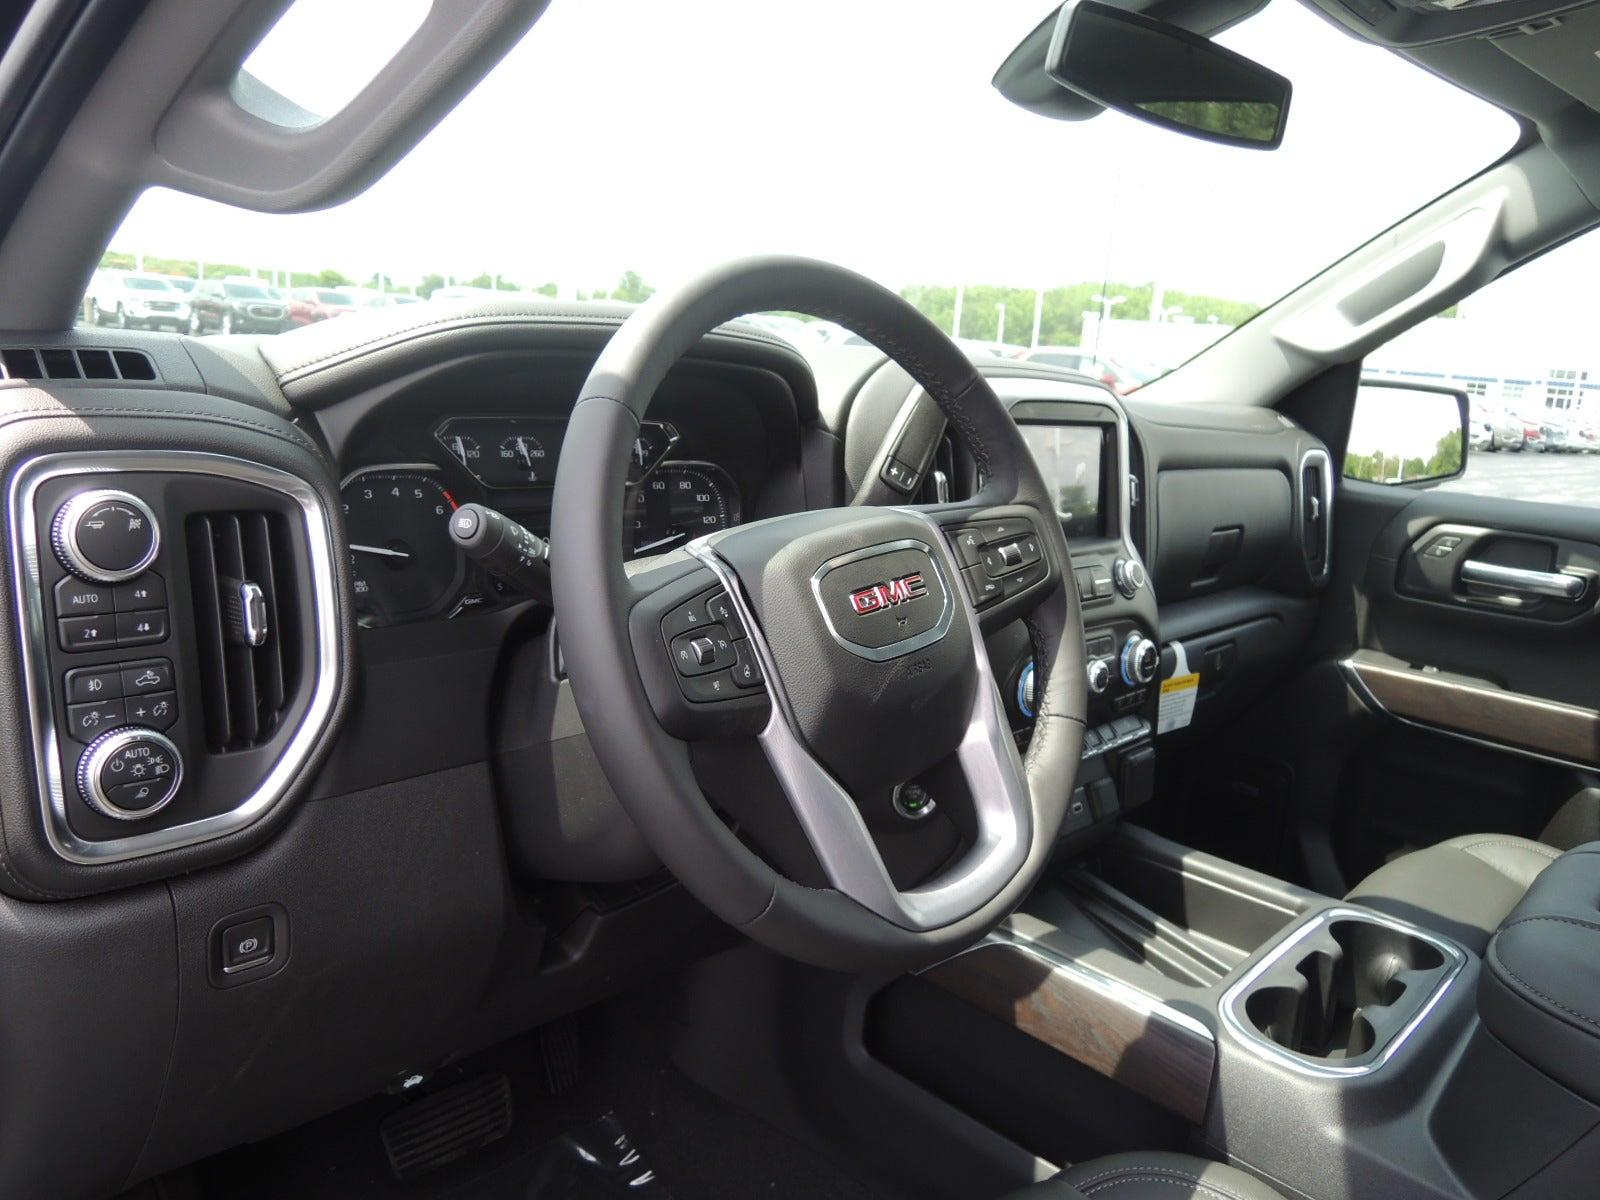 2021 GMC Sierra 1500 Crew Cab 4x4, Pickup #MT282 - photo 15